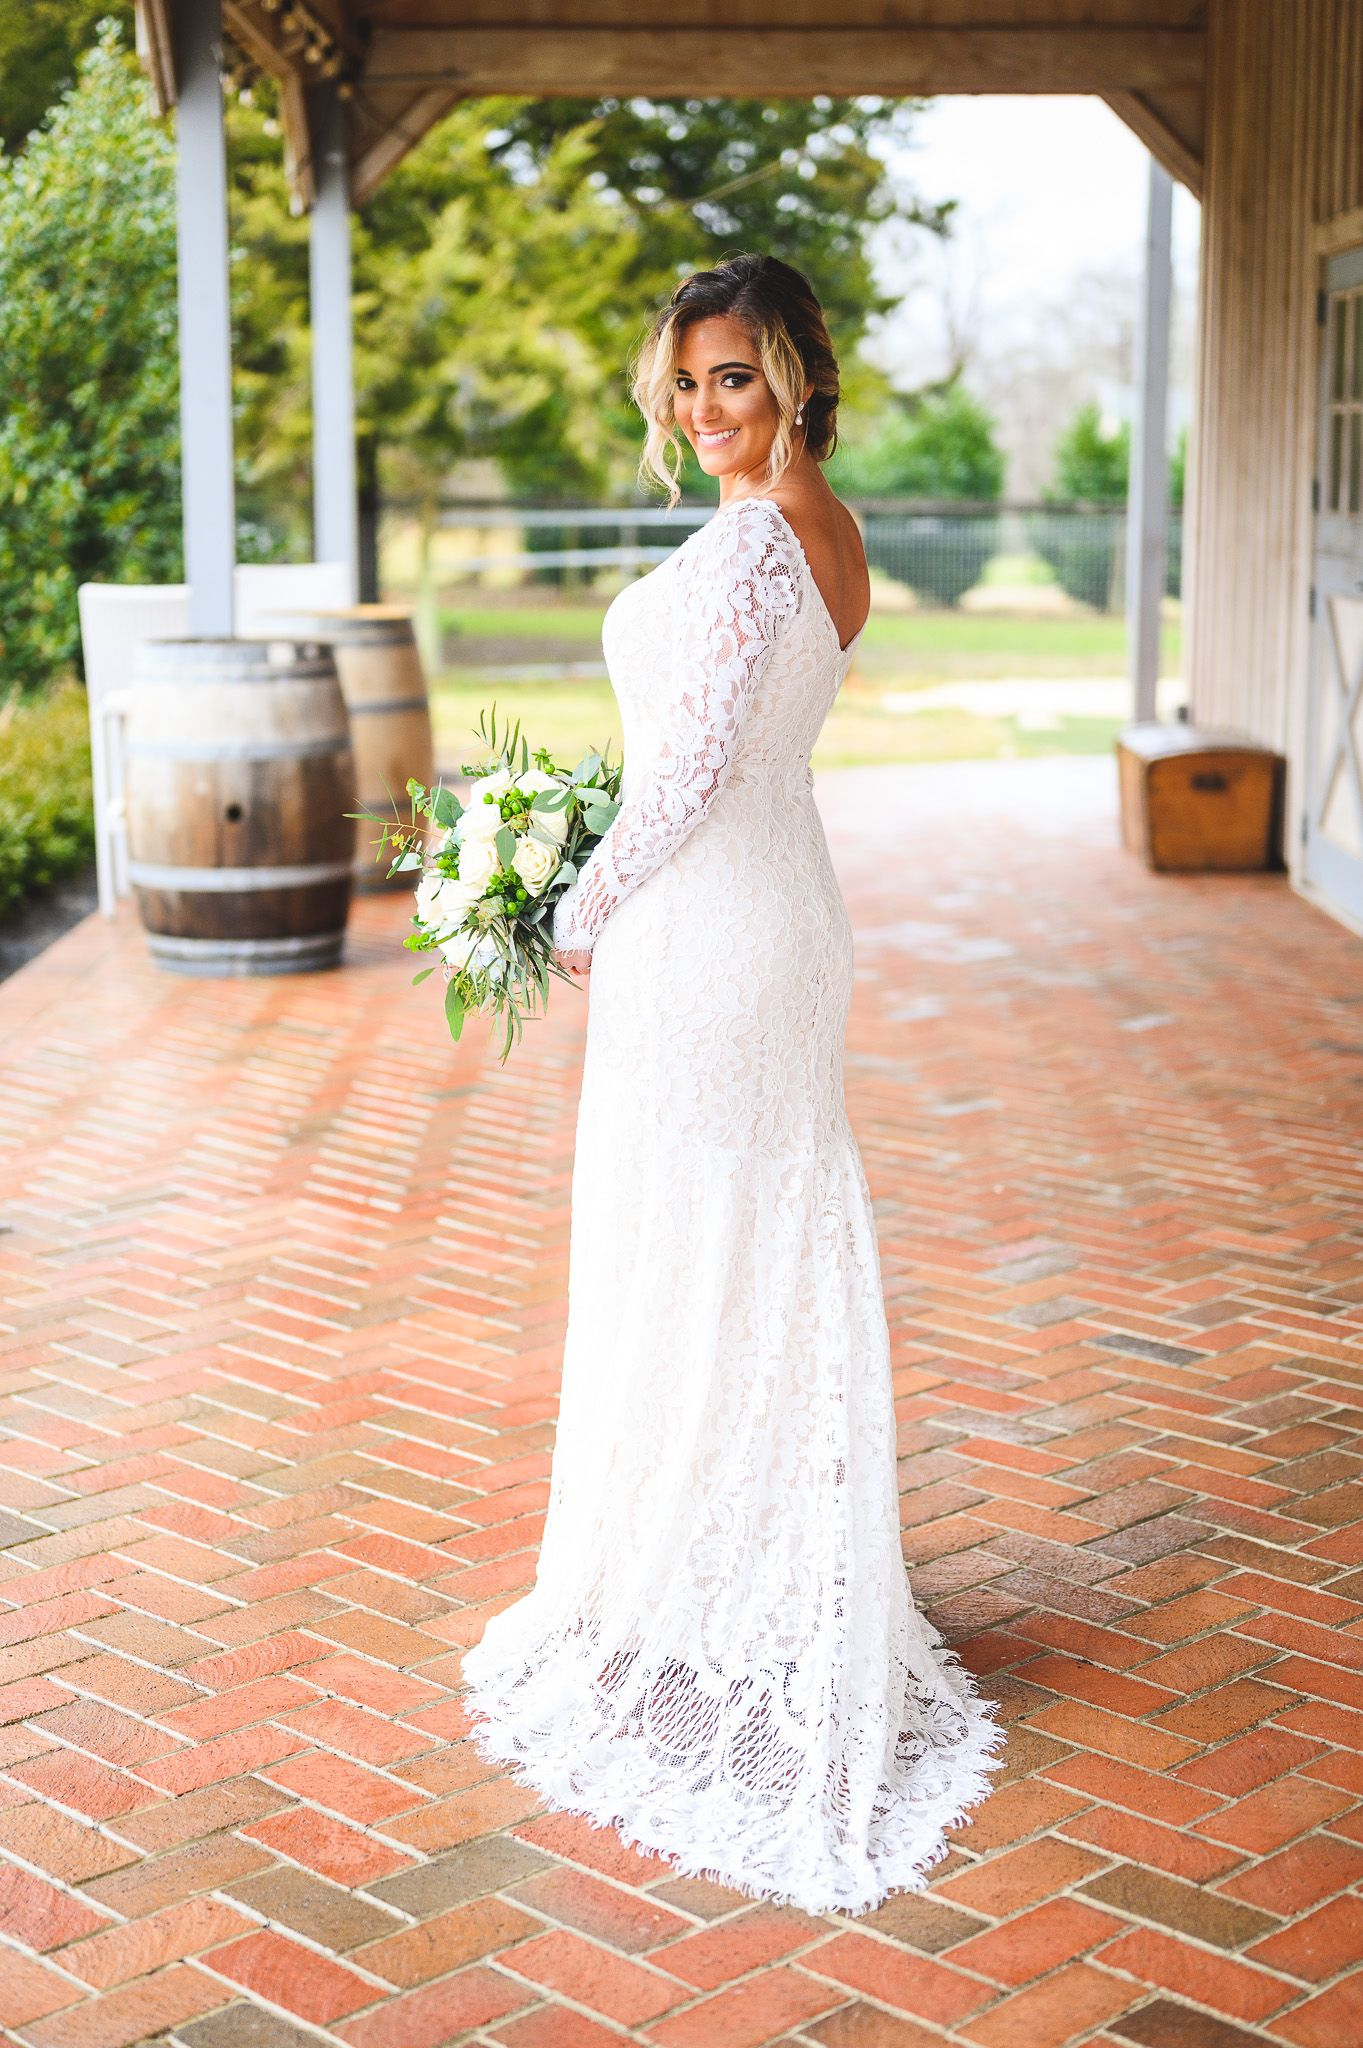 bride holding her bouquet and smiling on barnyard floor at Edel Haus alpaca farm